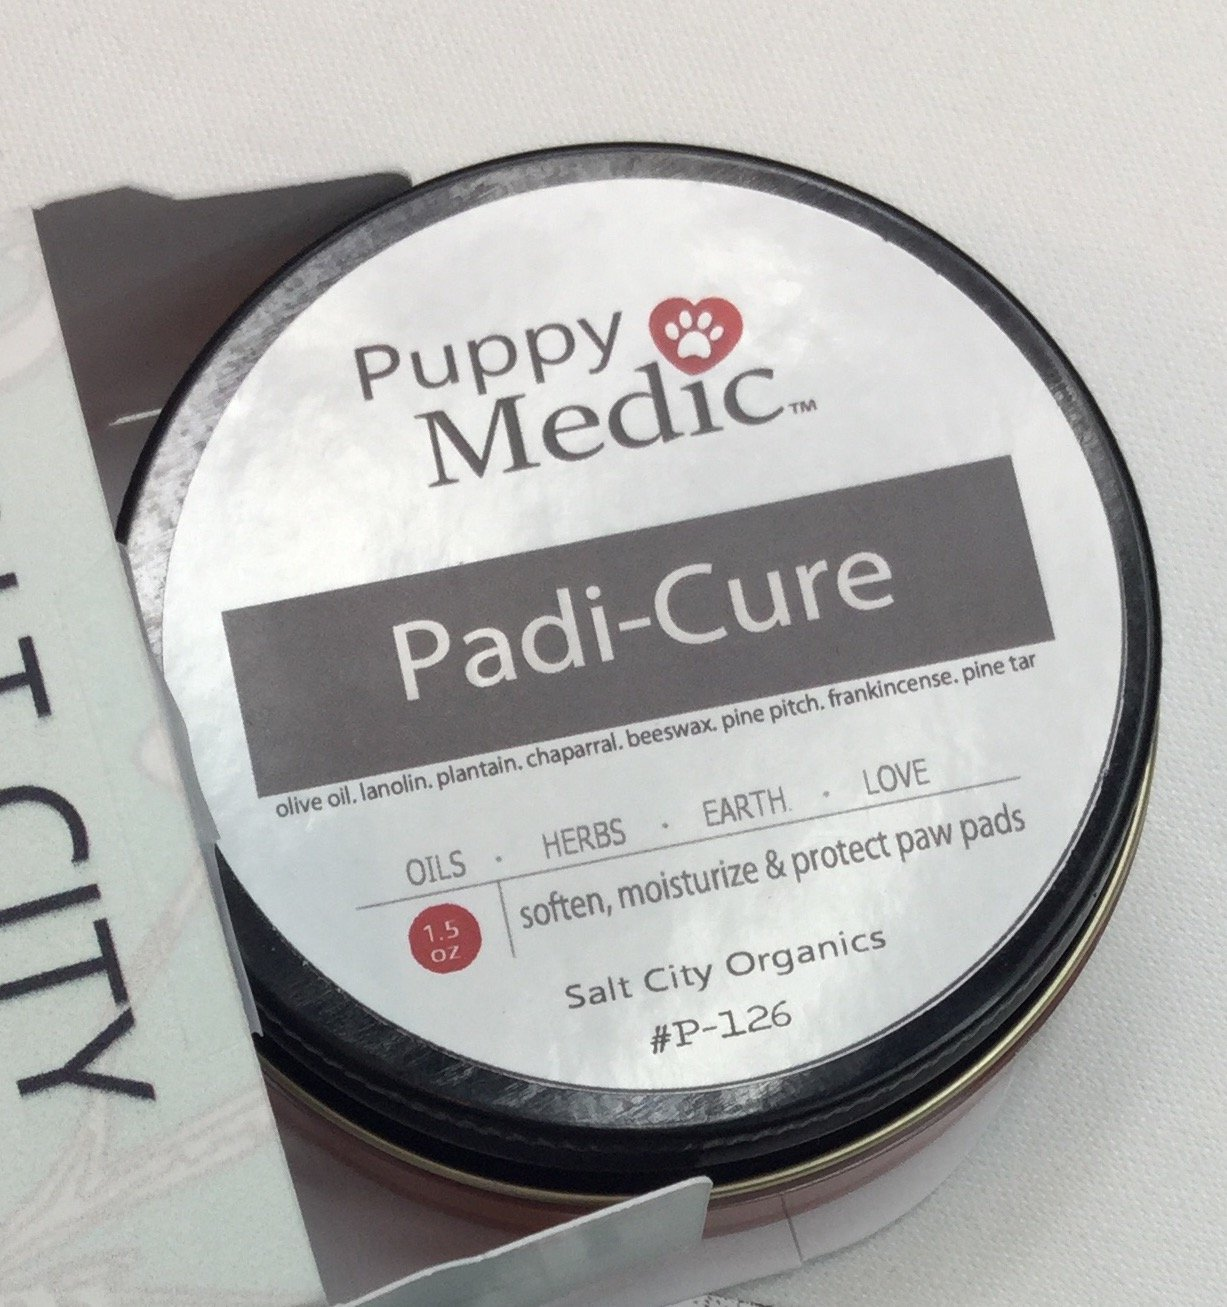 Padi-Cure Organic, Dog Paw Pain Relief & Treatment Balm - Effective for Calloused, Worn, Cracked Paws - Promotes Healing, Moisturizes, Soothes Aged, Bleeding Paws & Skin - Protects Natures Way - 1.5oz